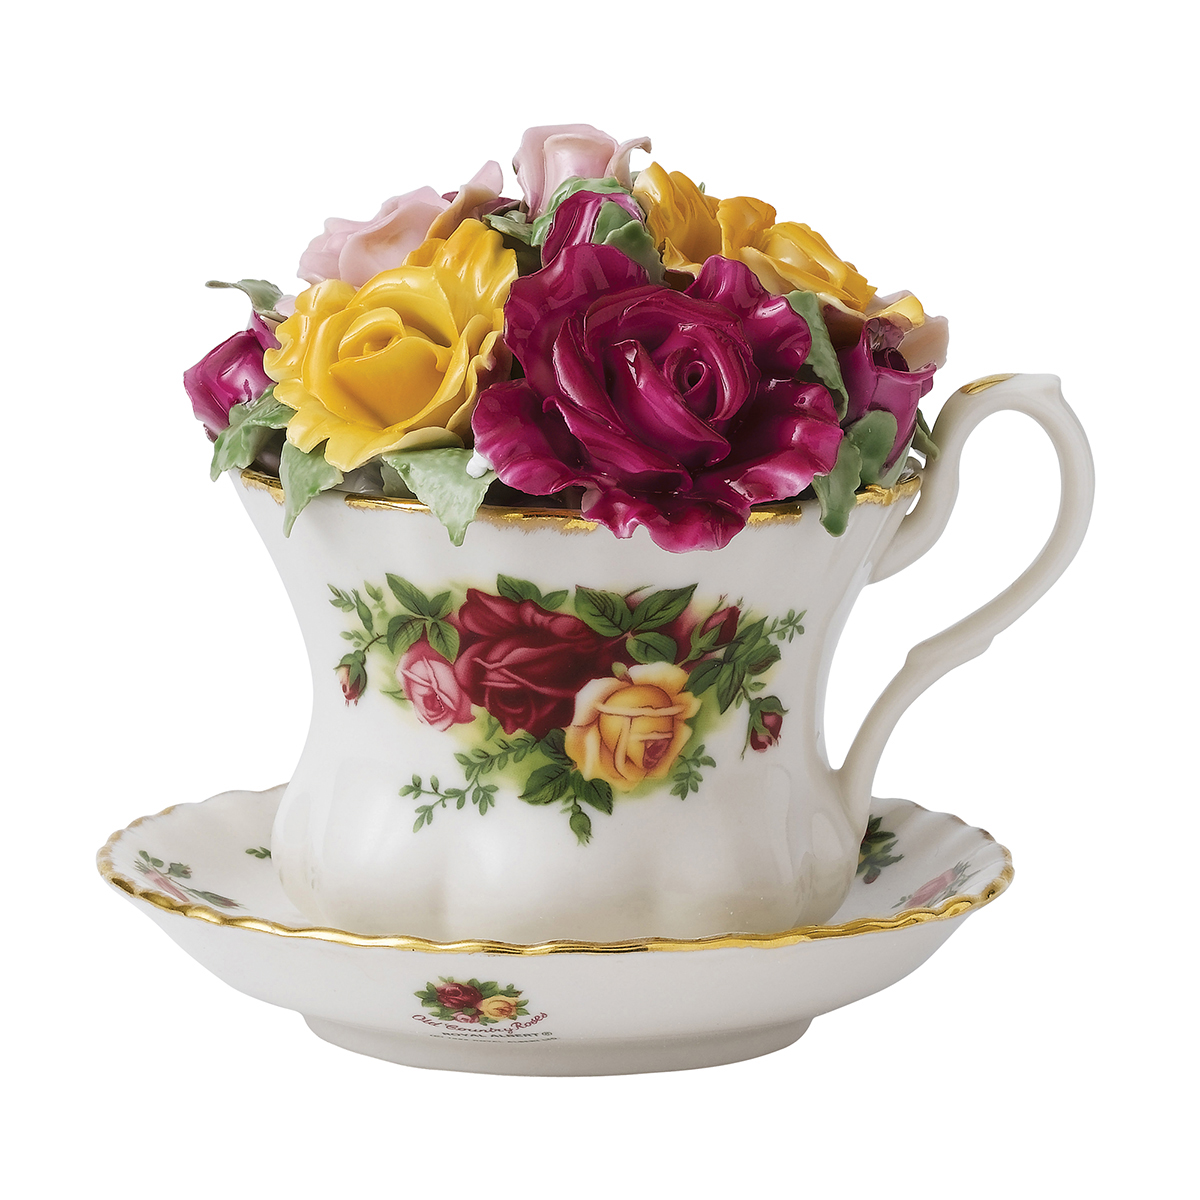 Old Country Roses Musical Teacup By Royal Albert